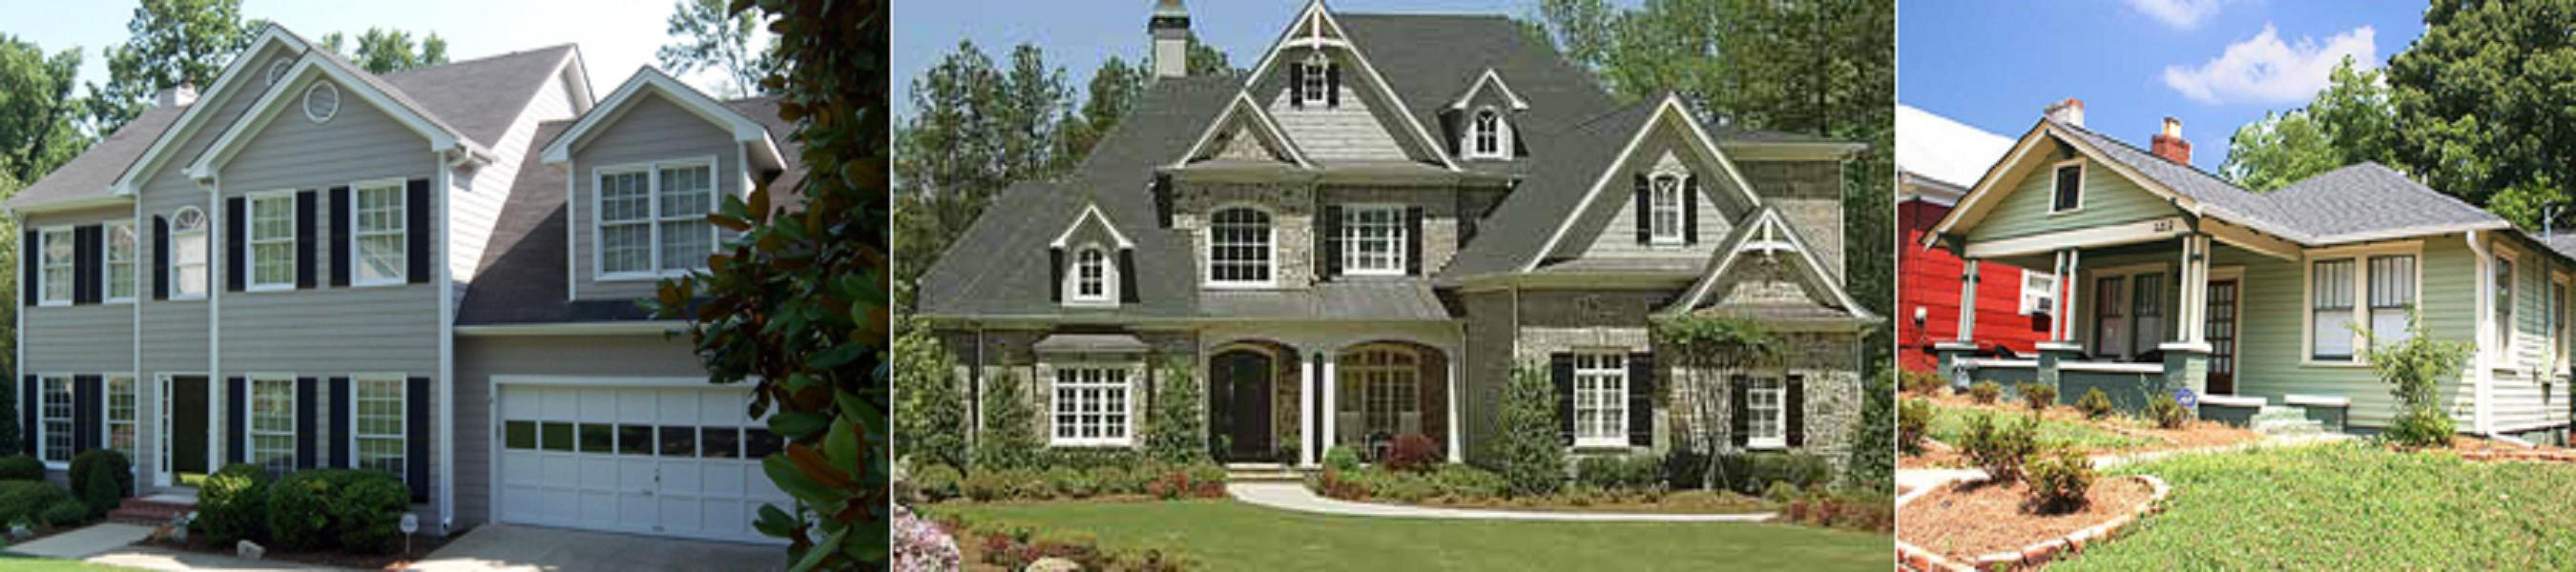 My Cousin Consulted Me To Atlanta Roofing Companies For Roofing Repair Of  My House. After